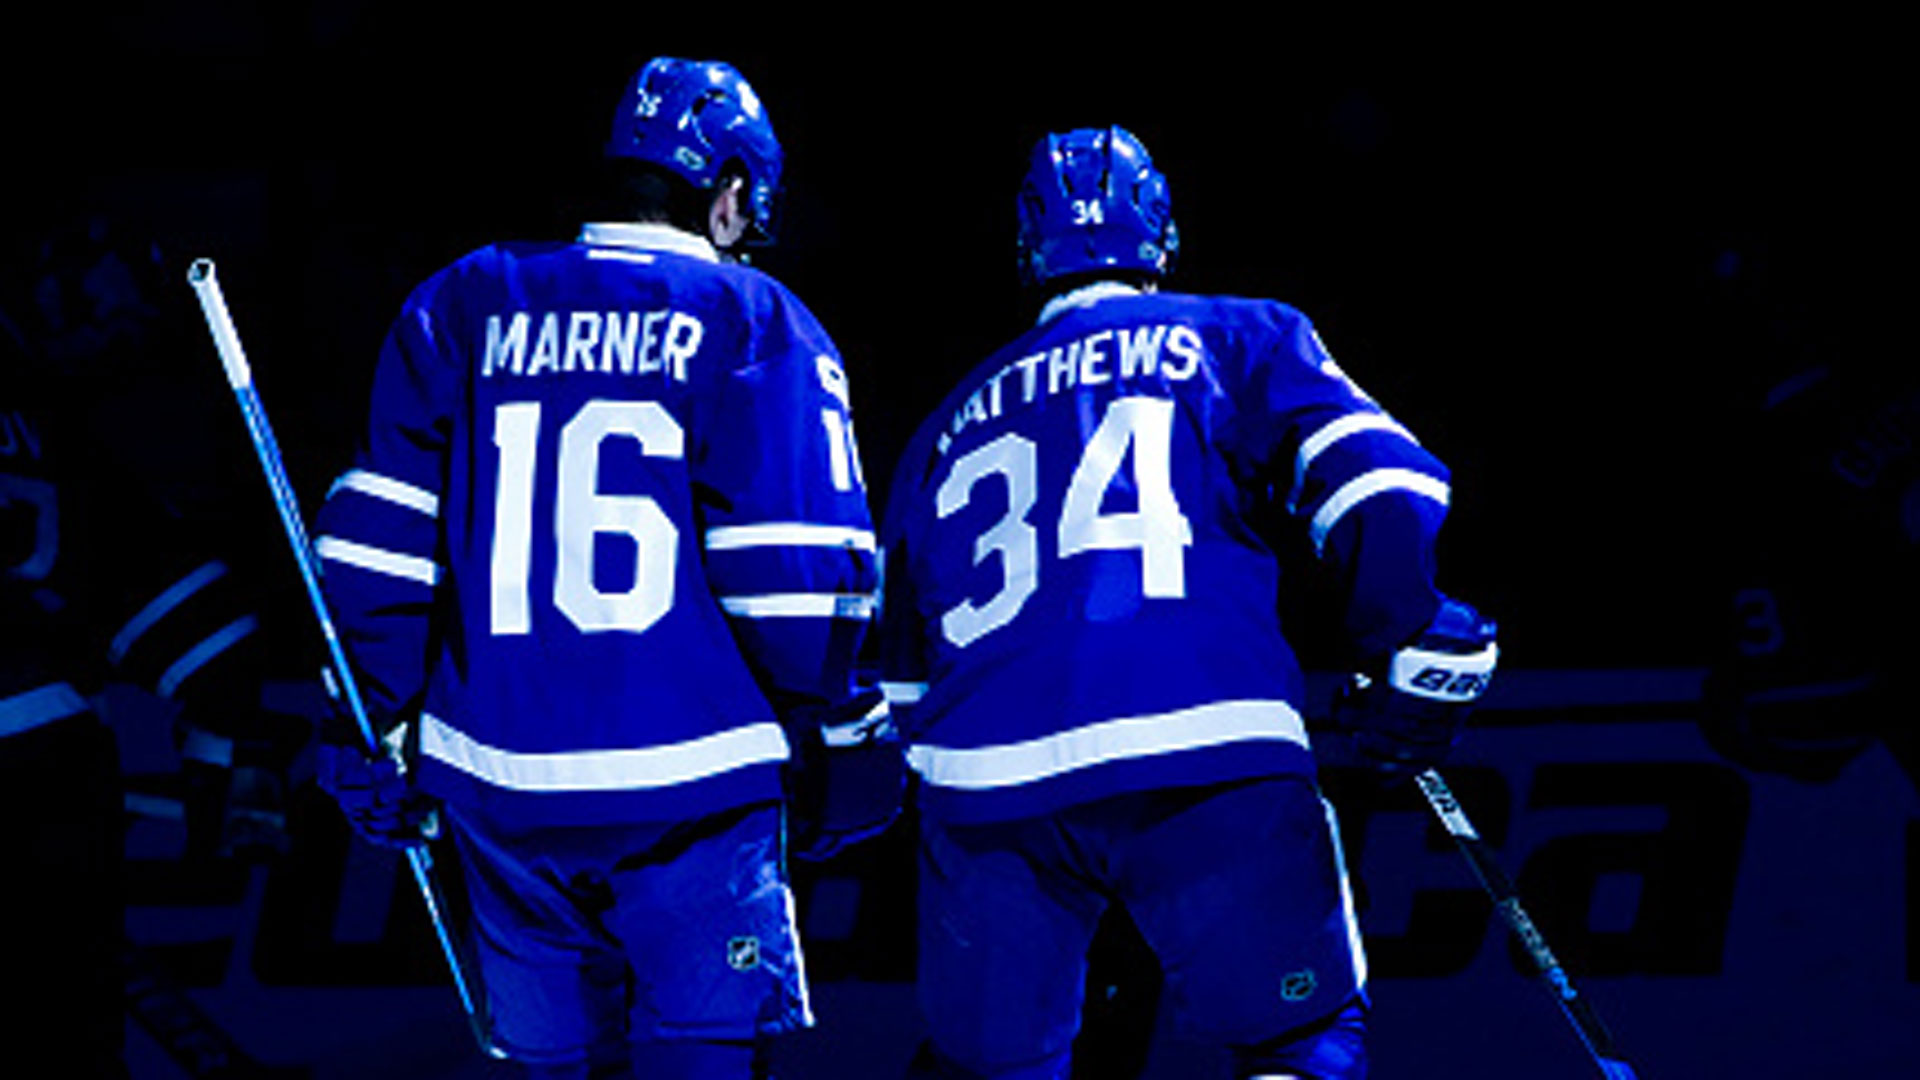 Nba Players Iphone Wallpaper Who S Got Your Vote For The Calder Matthews Or Marner